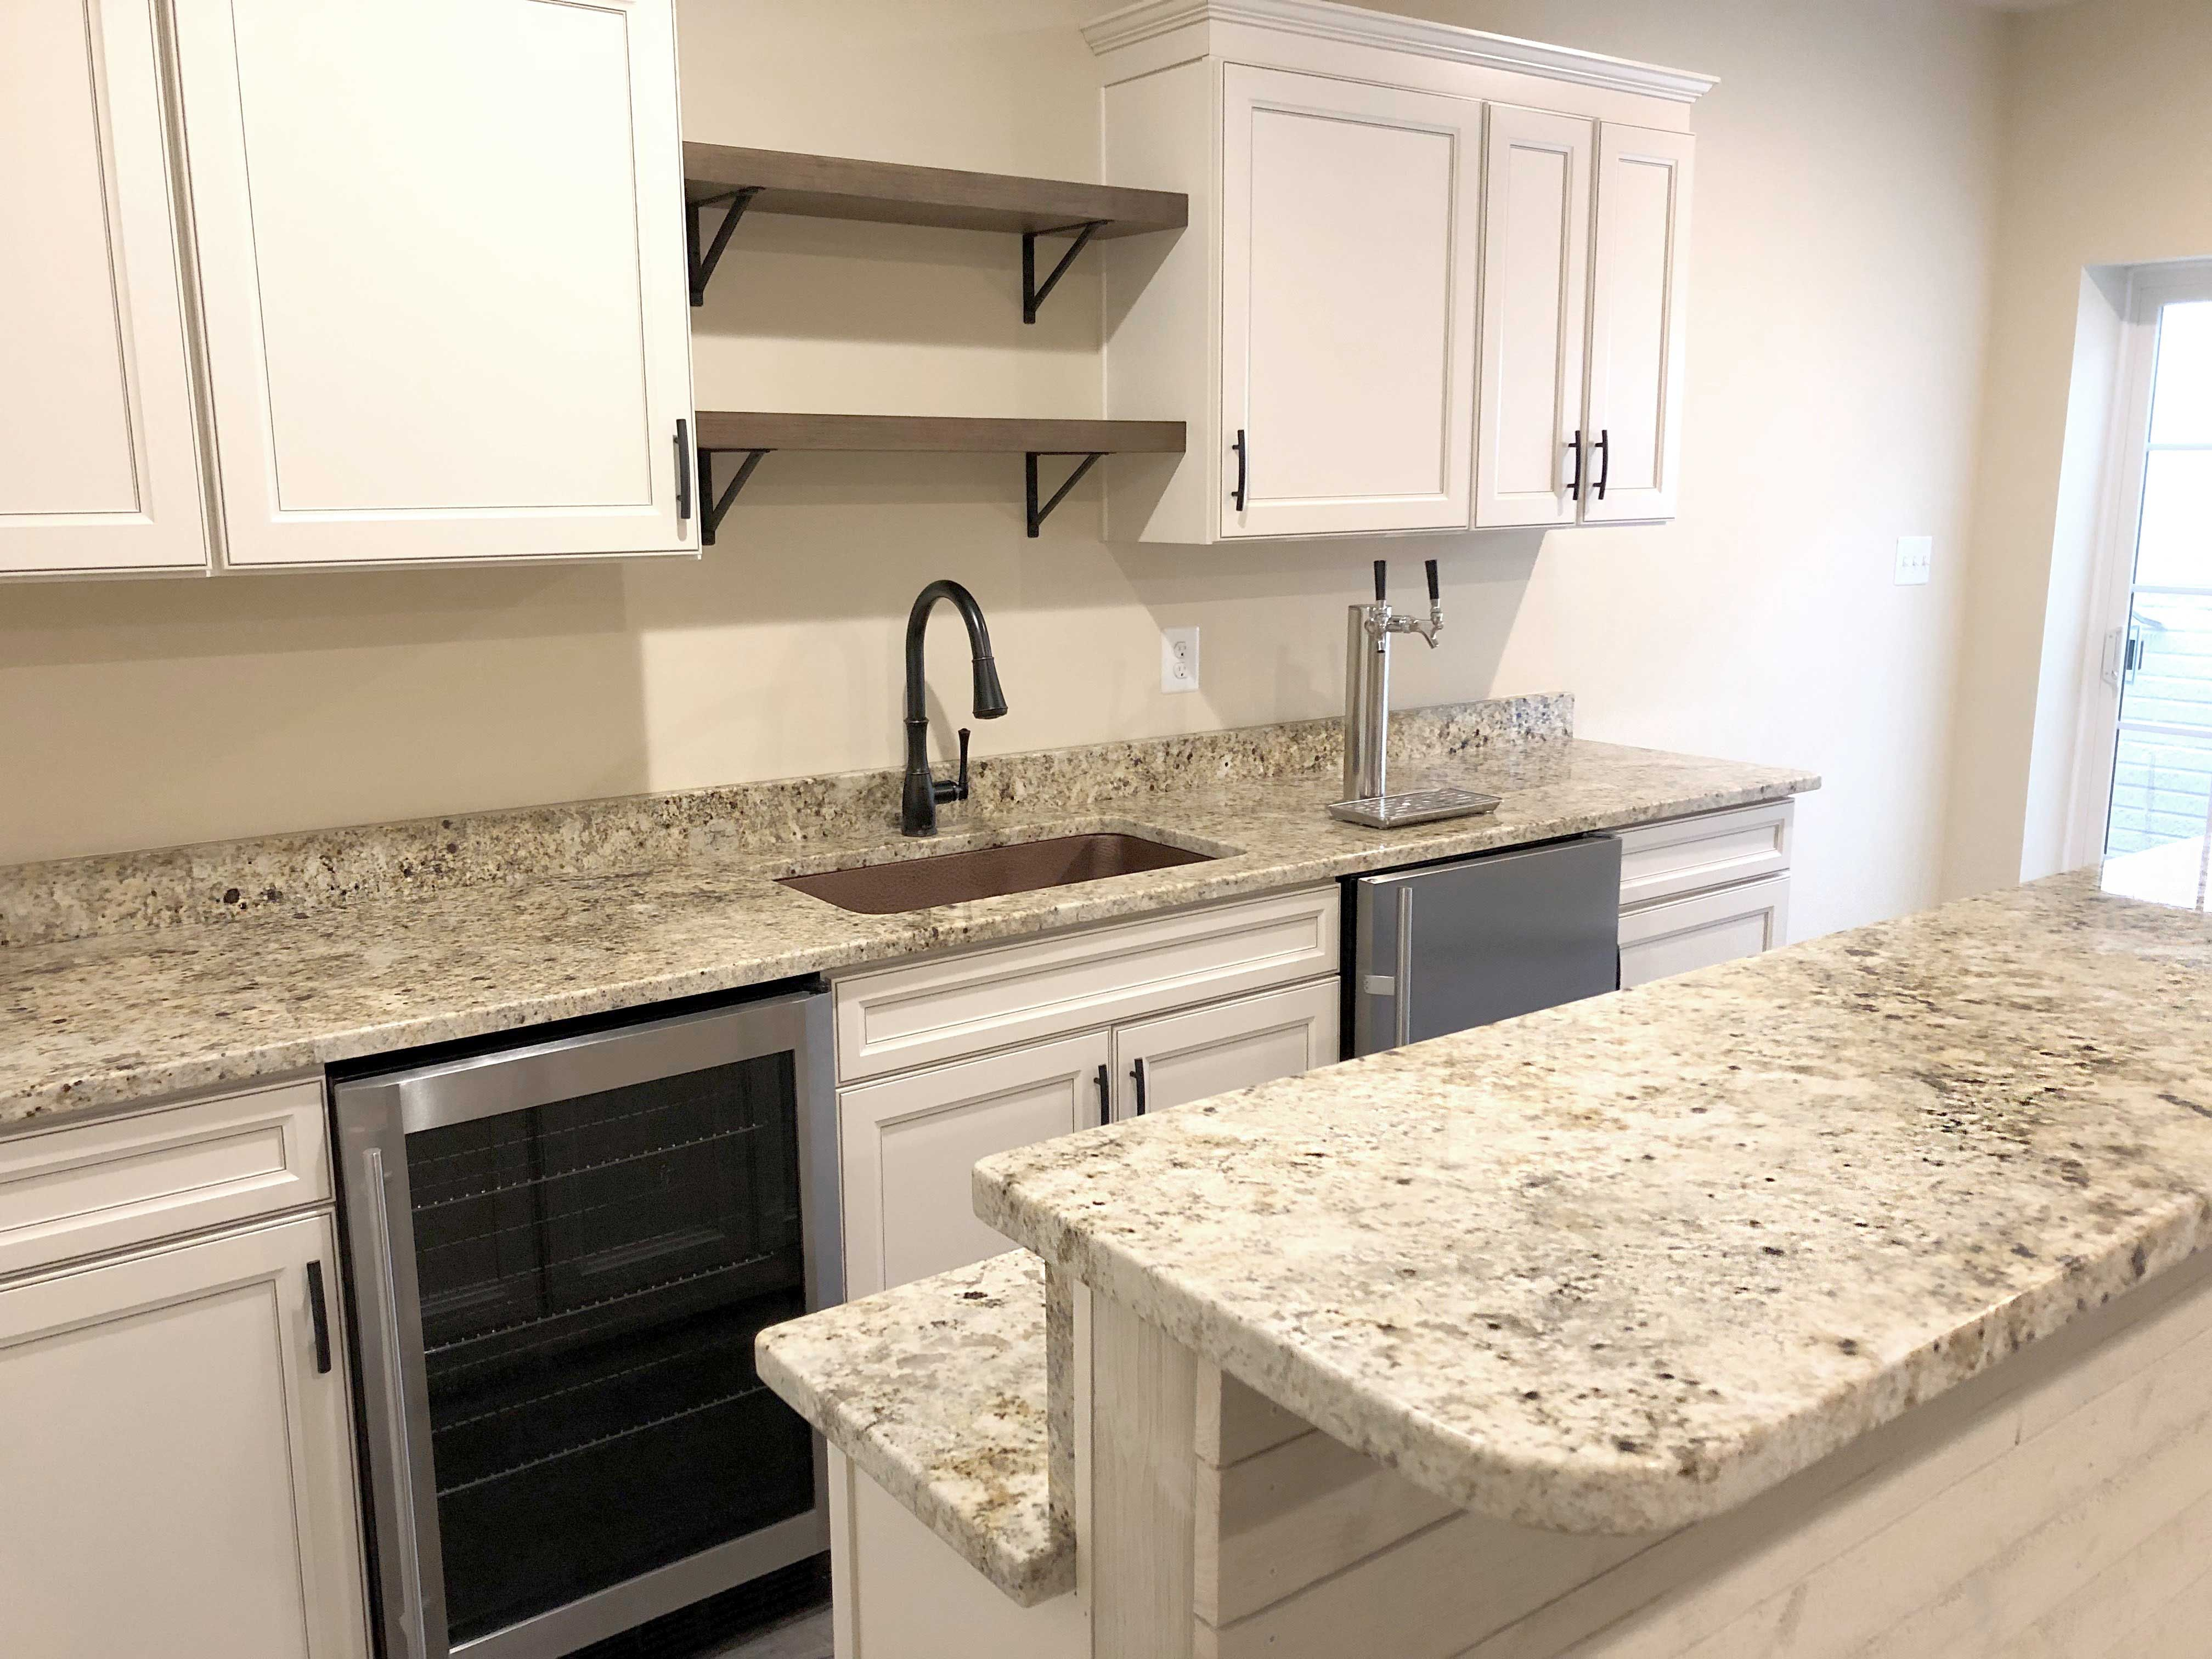 Photo Of The Day From Our Customer Stone Colonial Gold Colonialgold Granite Granite Countertops Kitchen Quartz Kitchen Countertops Granite Countertops